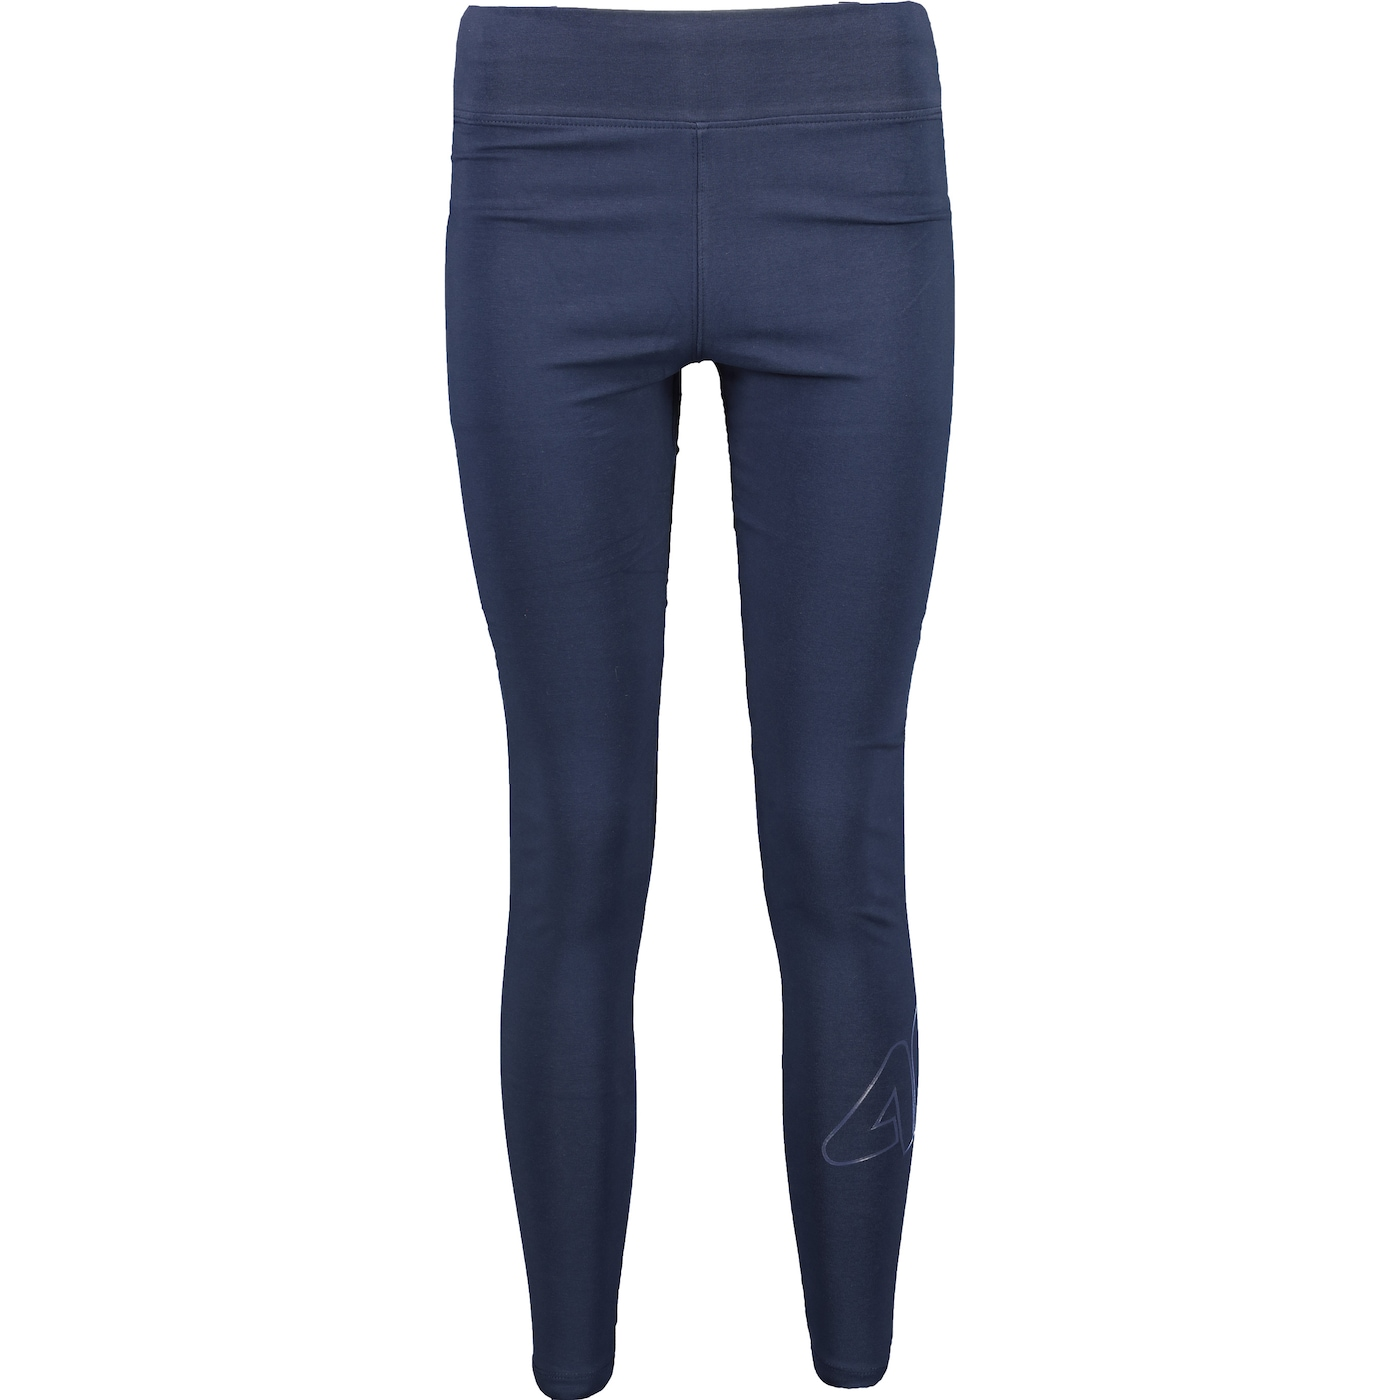 Women's Leggings 4F LEG001